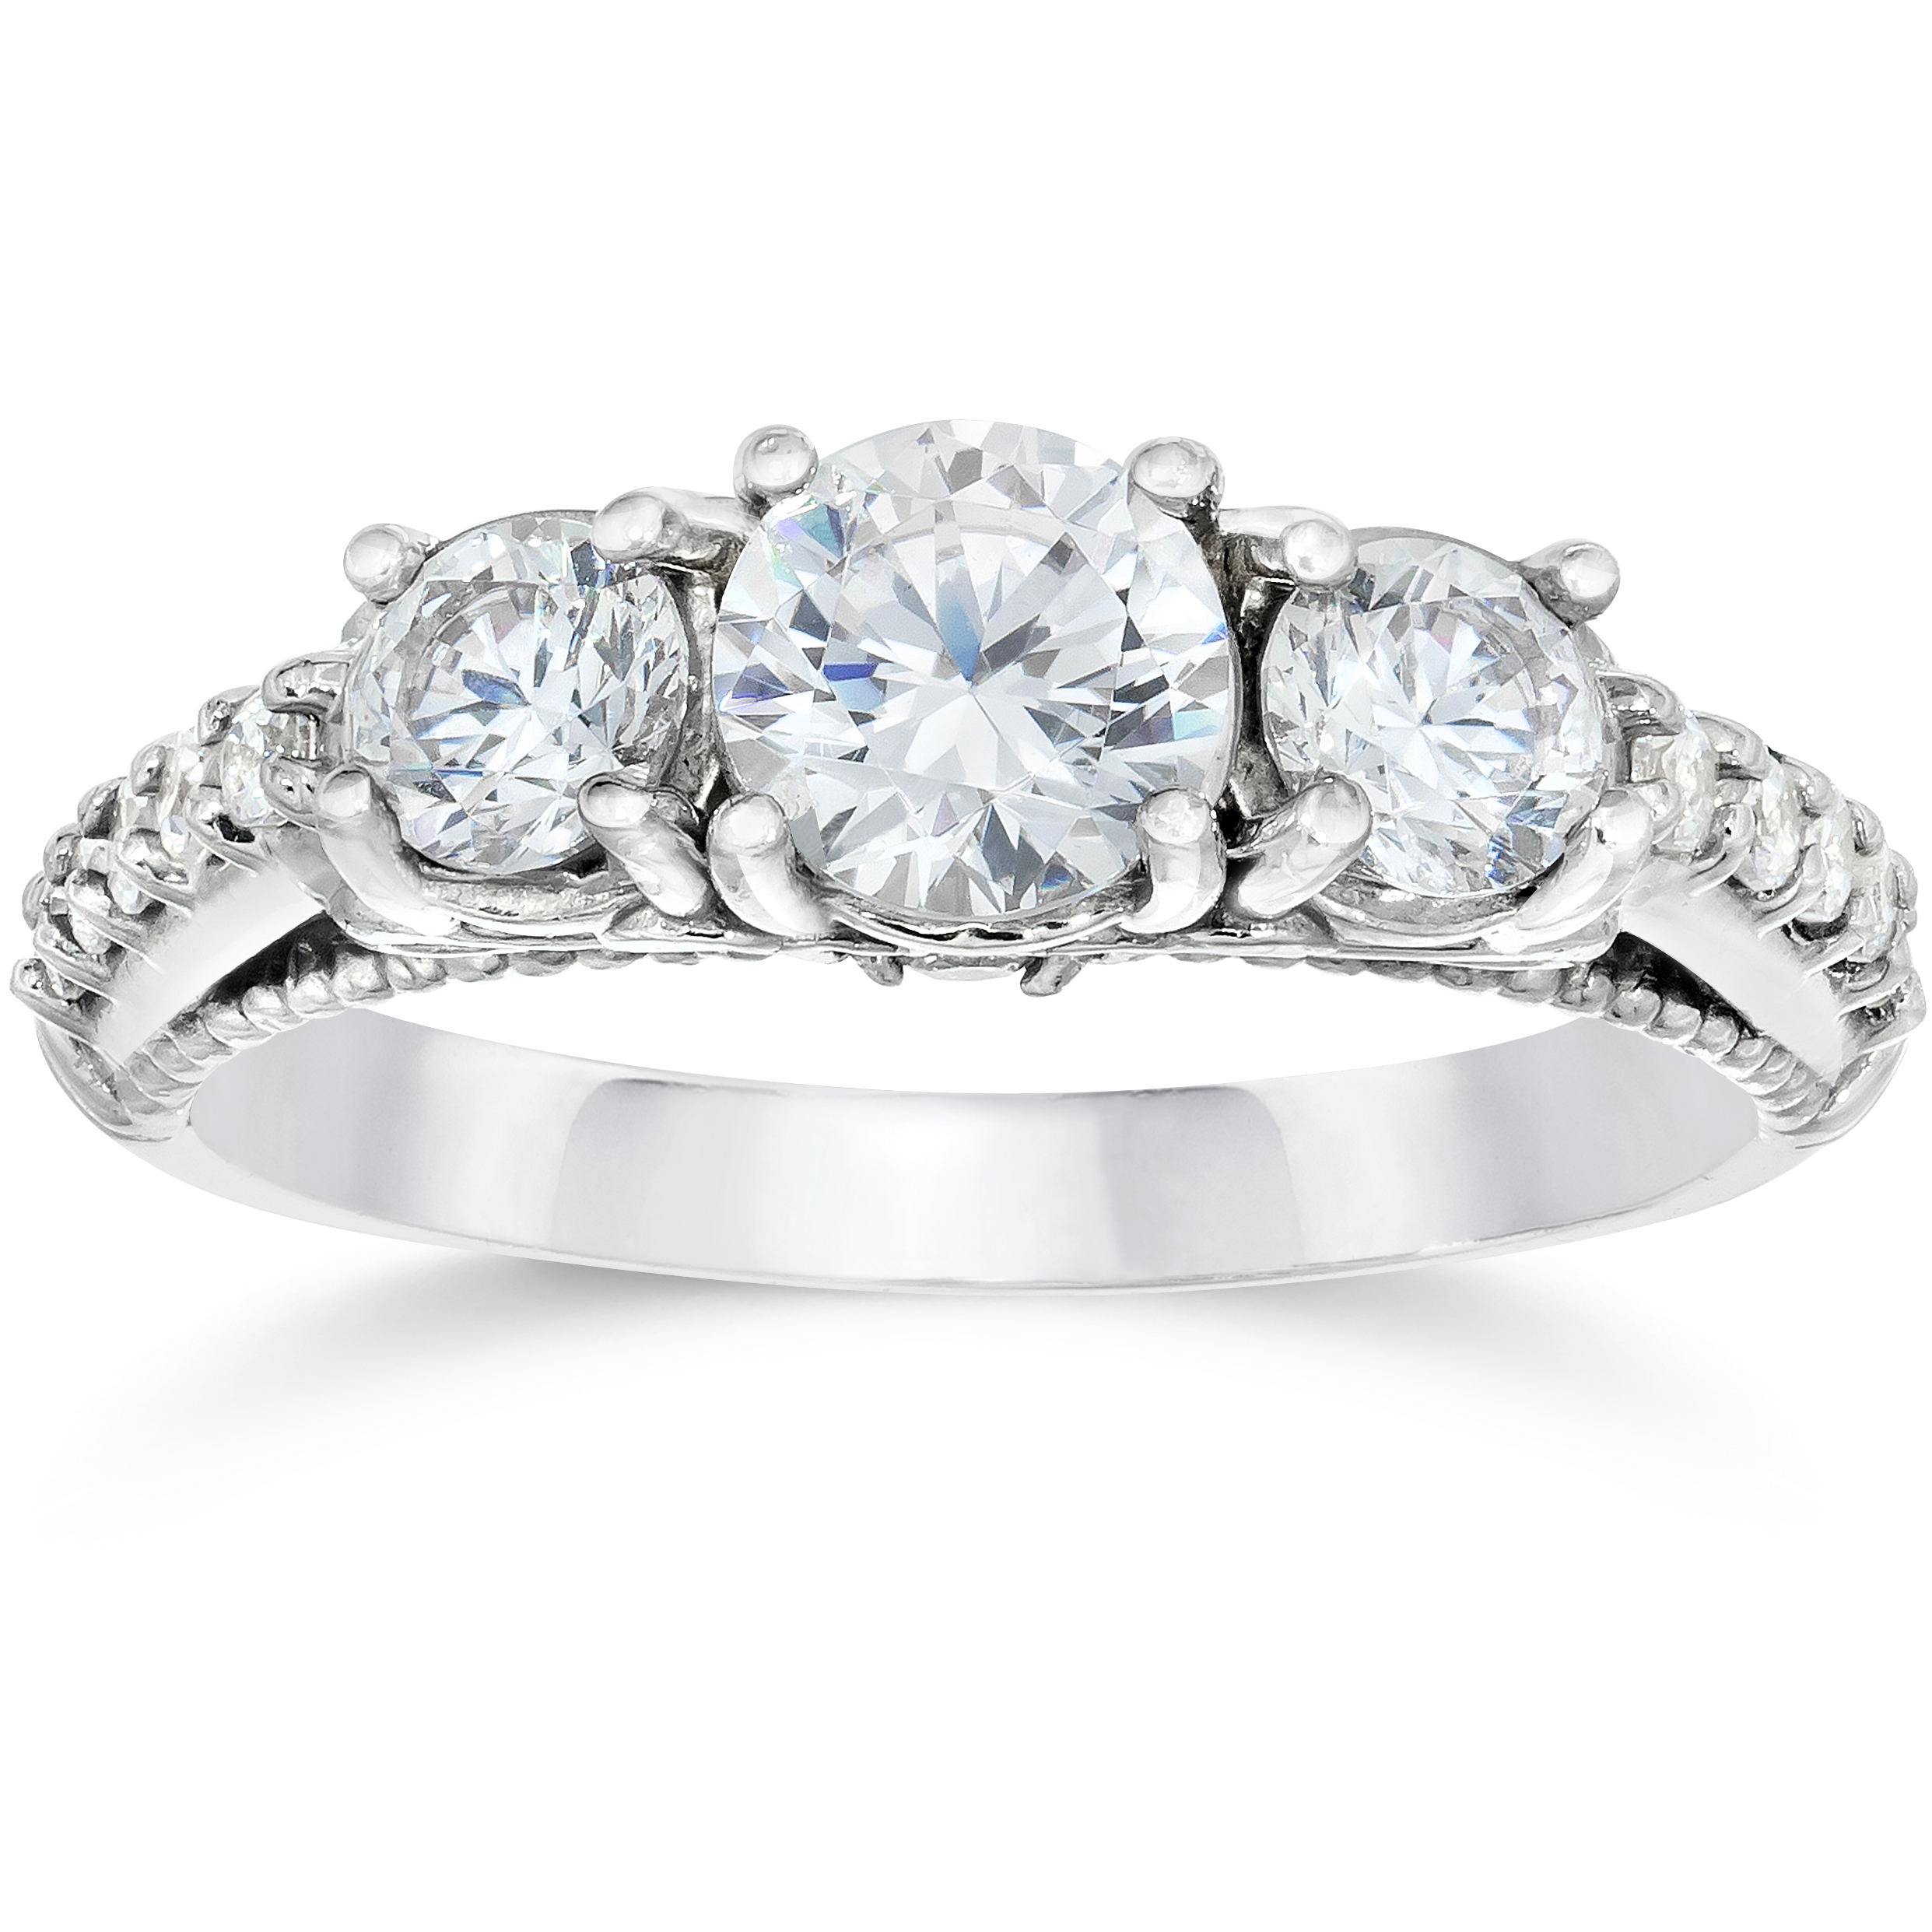 1 1 5ct Vintage Heirloom 3-Stone Round Diamond Engagement Ring 14K White Gold by Pompeii3